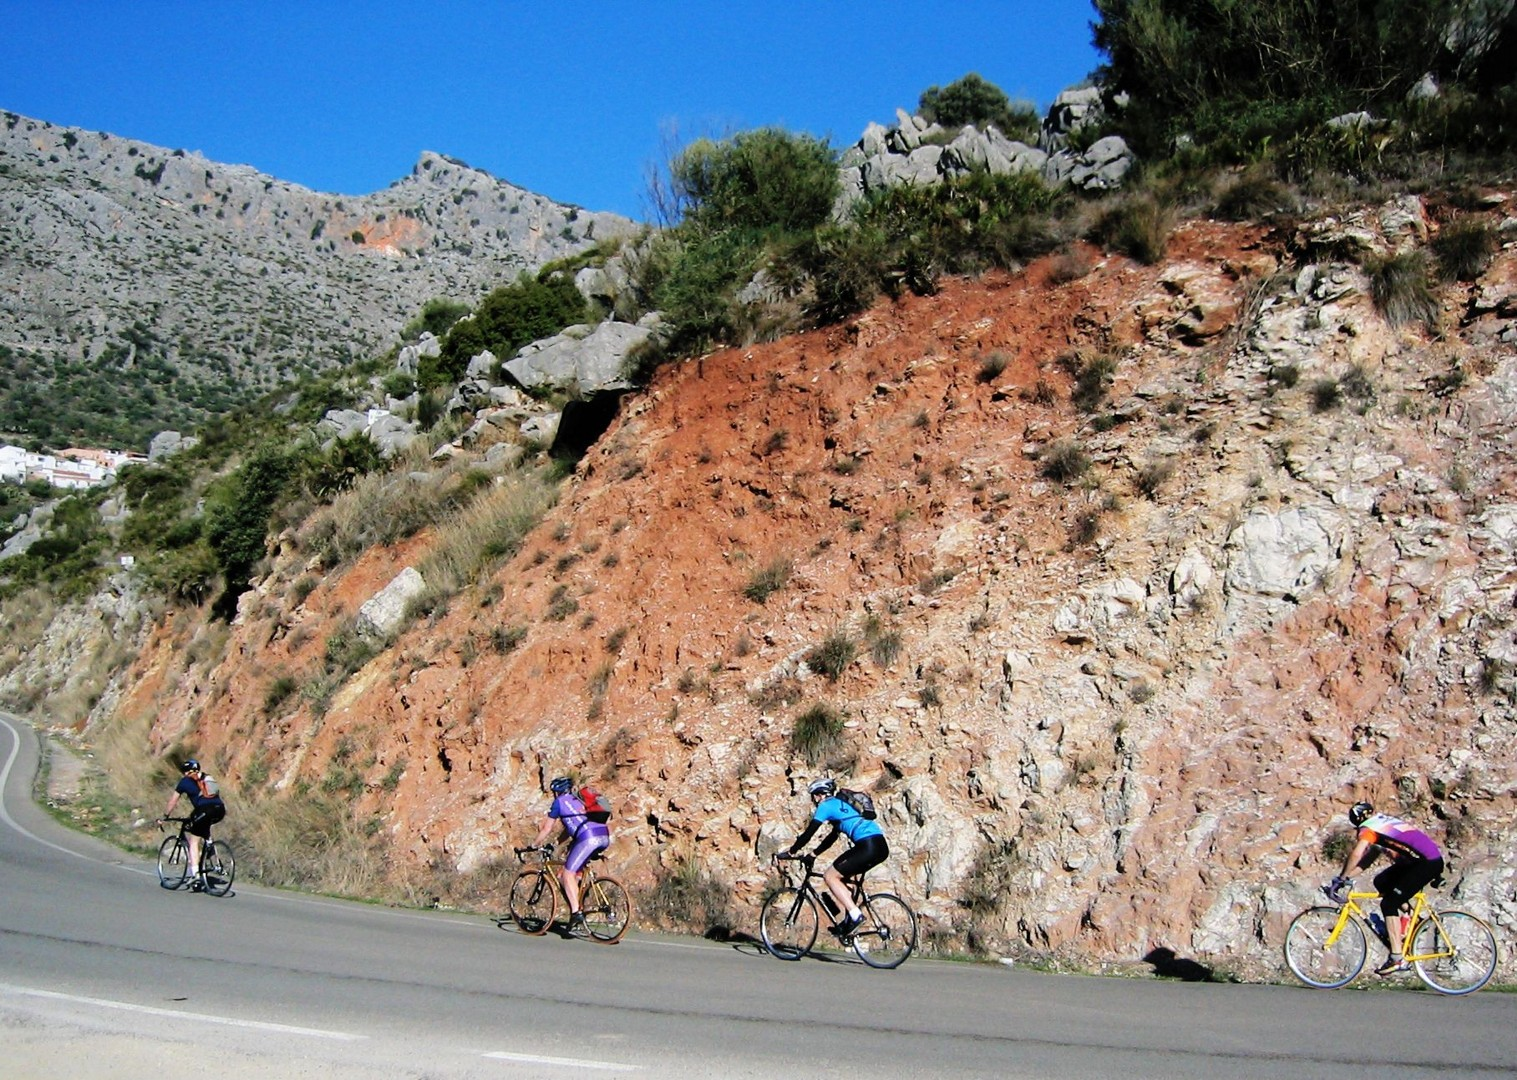 southern-spain-andalucia-cape-to-cape-traverse-guided-road-cycling-holiday-cape-trafalgar.jpg - Southern Spain - Andalucia - Cape to Cape Traverse - Guided Road Cycling Holiday - Road Cycling